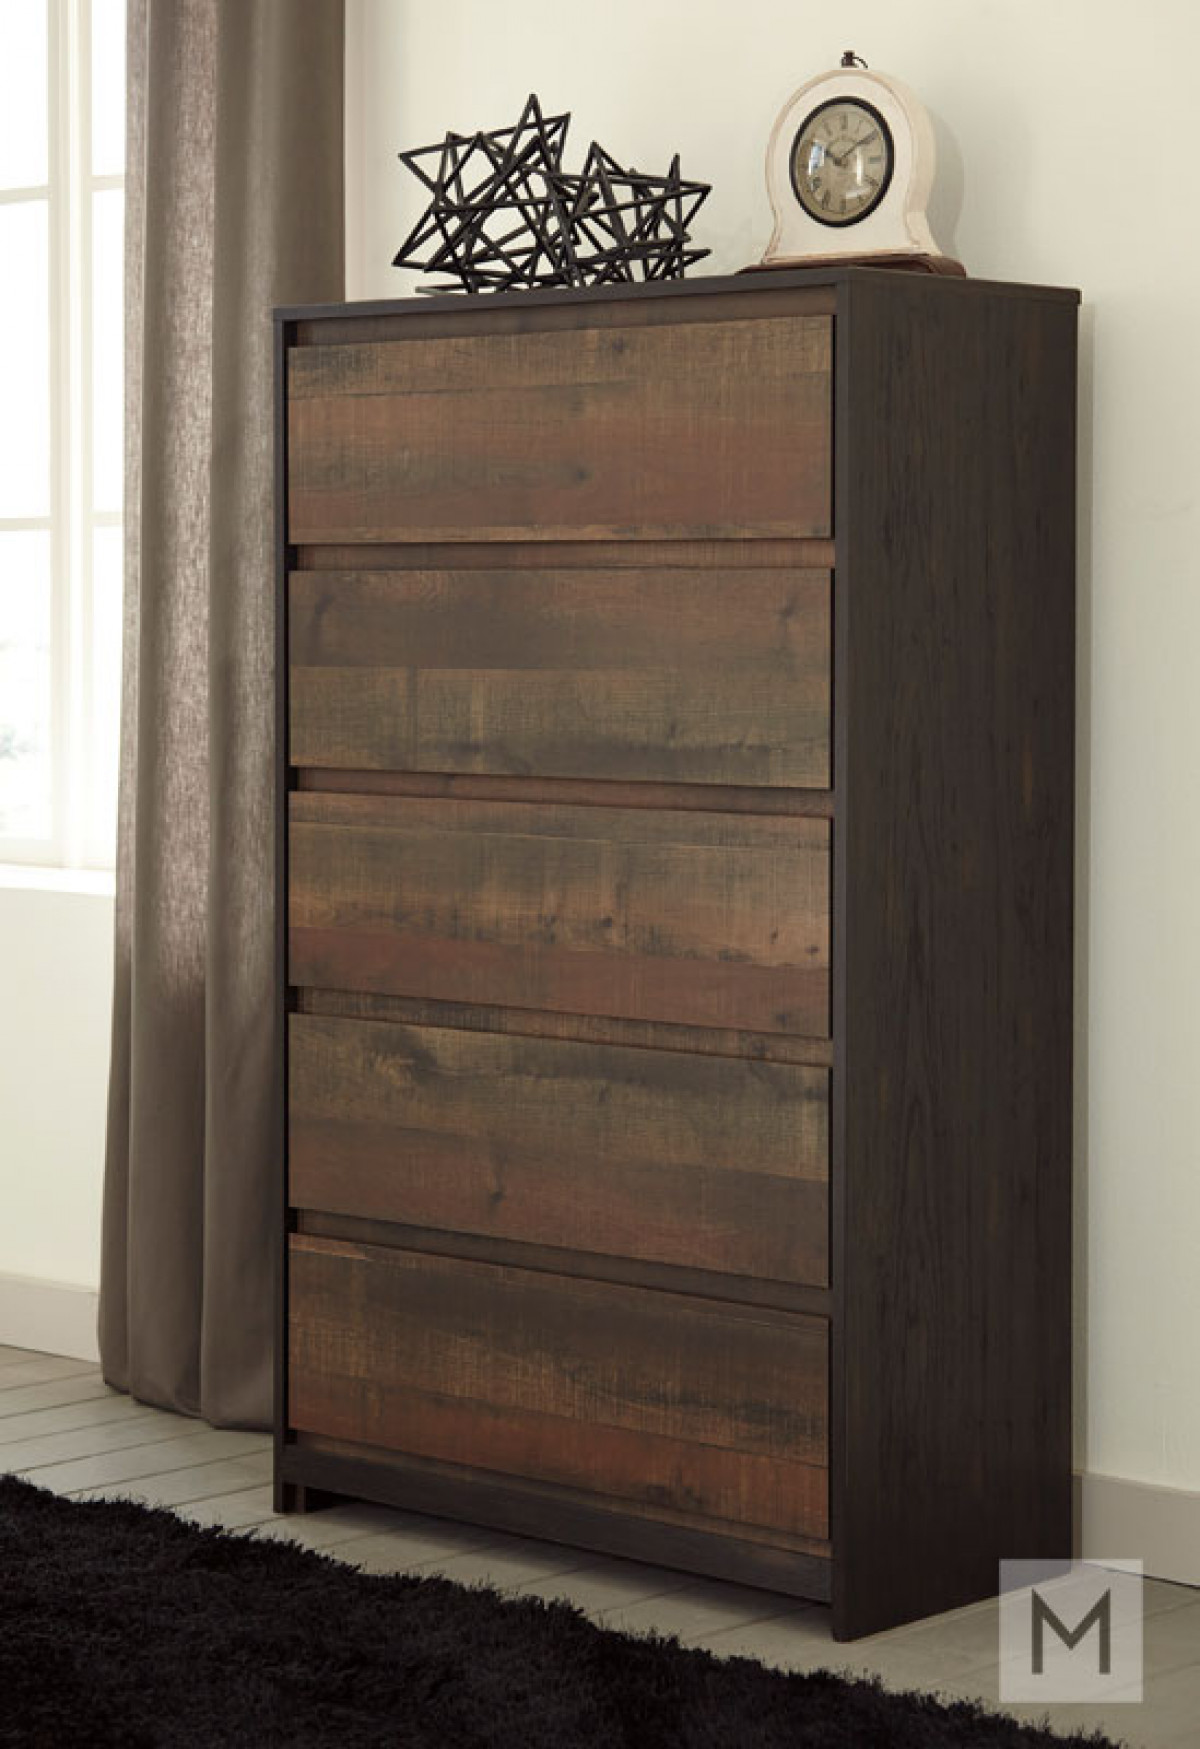 Windlore Five Drawer Chest in Dark Brown with a Rustic Finish